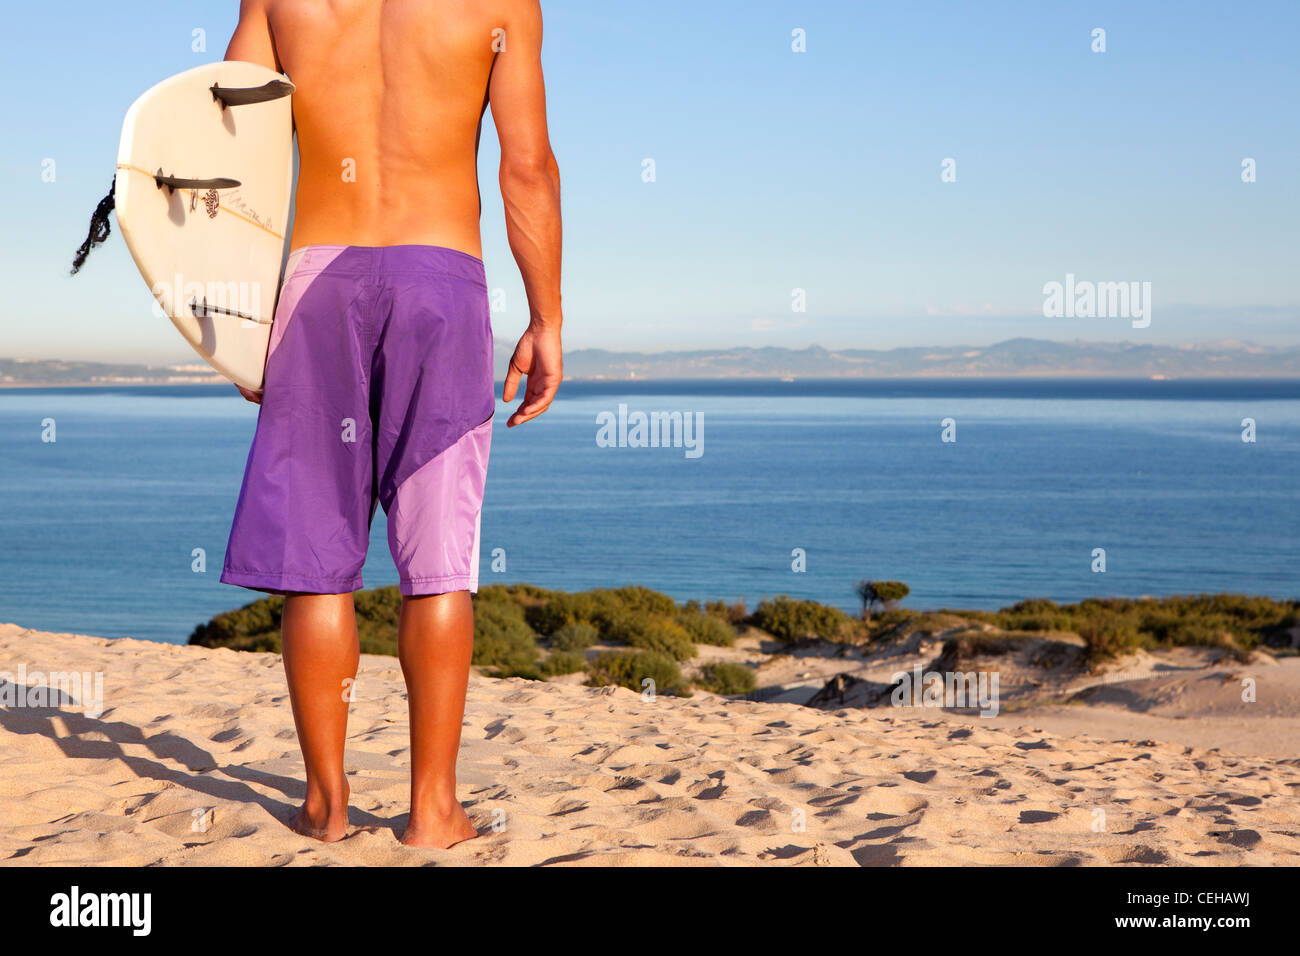 Surfer am Strand Stockbild